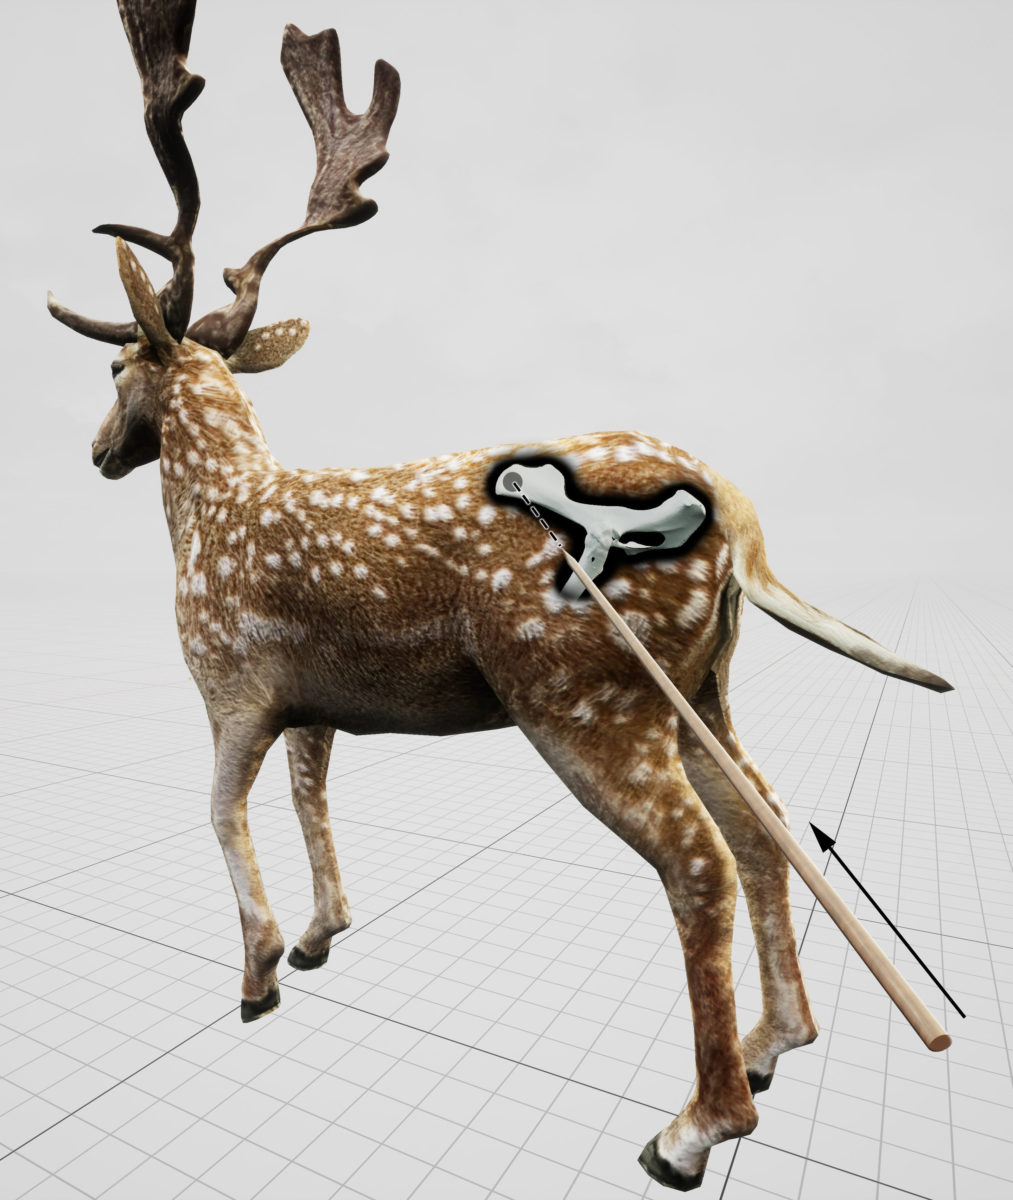 Estimated impact angle shown in relation to a standing fallow deer for the hunting lesion observed in the pelvis of an extinct fallow deer, killed by Neandertals 120,000 years ago on a lake shore close to current-day Halle (Germany). Credit: Eduard Pop, MONREPOS Archaeological Research Centre and Museum for Human Behavioural Evolution, Römisch-Germanisches Zentralmuseum, Leibniz-Researchinstitute for Archaeology